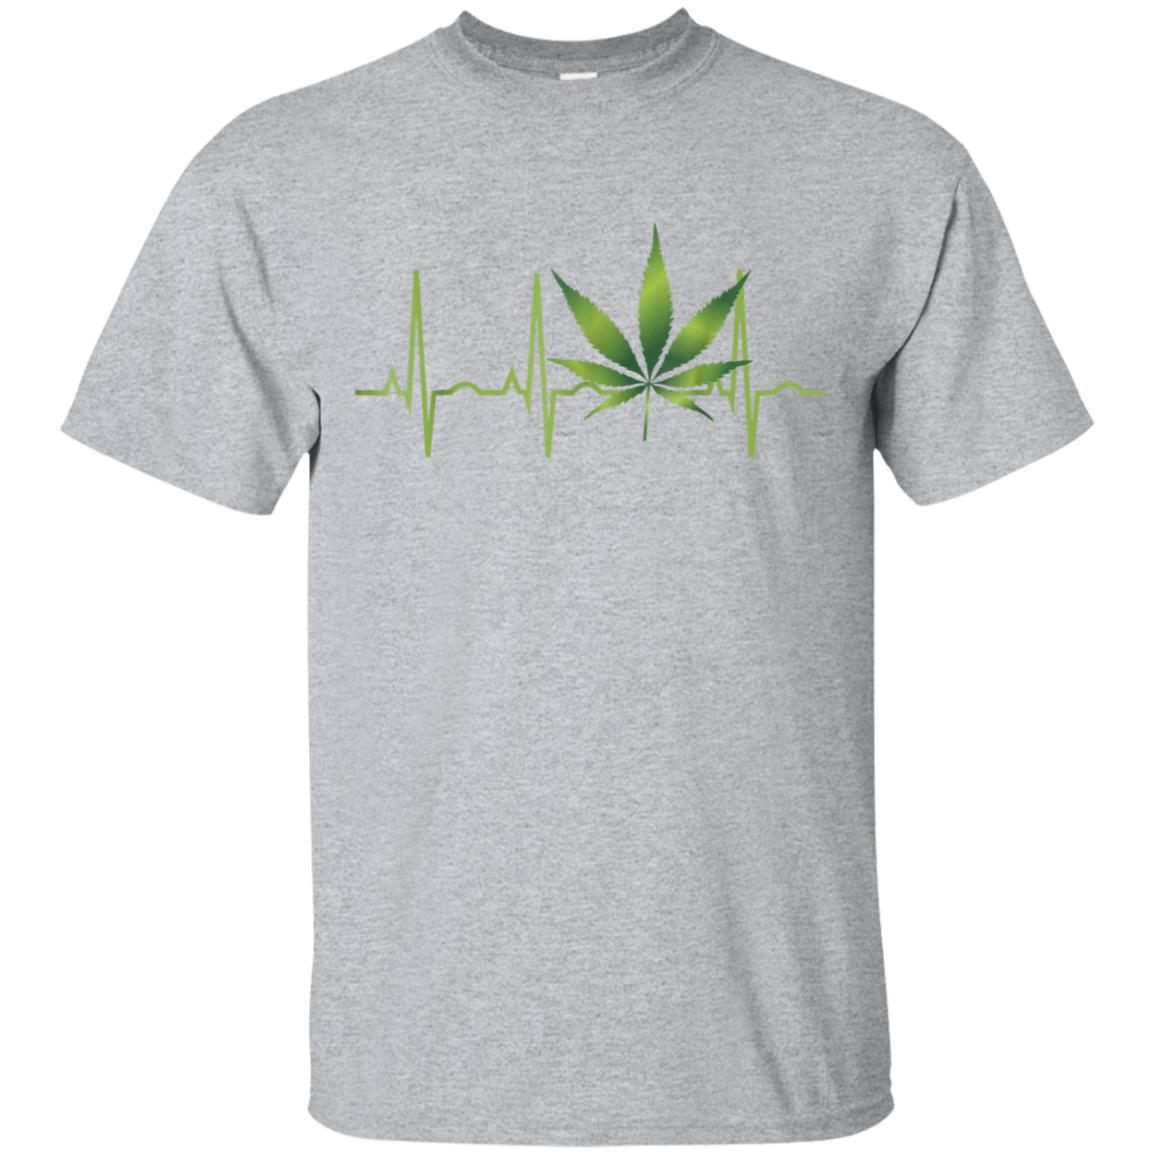 Weed Shirts for Men & Women Marijuana Leaf Heartbeat Gift 99promocode